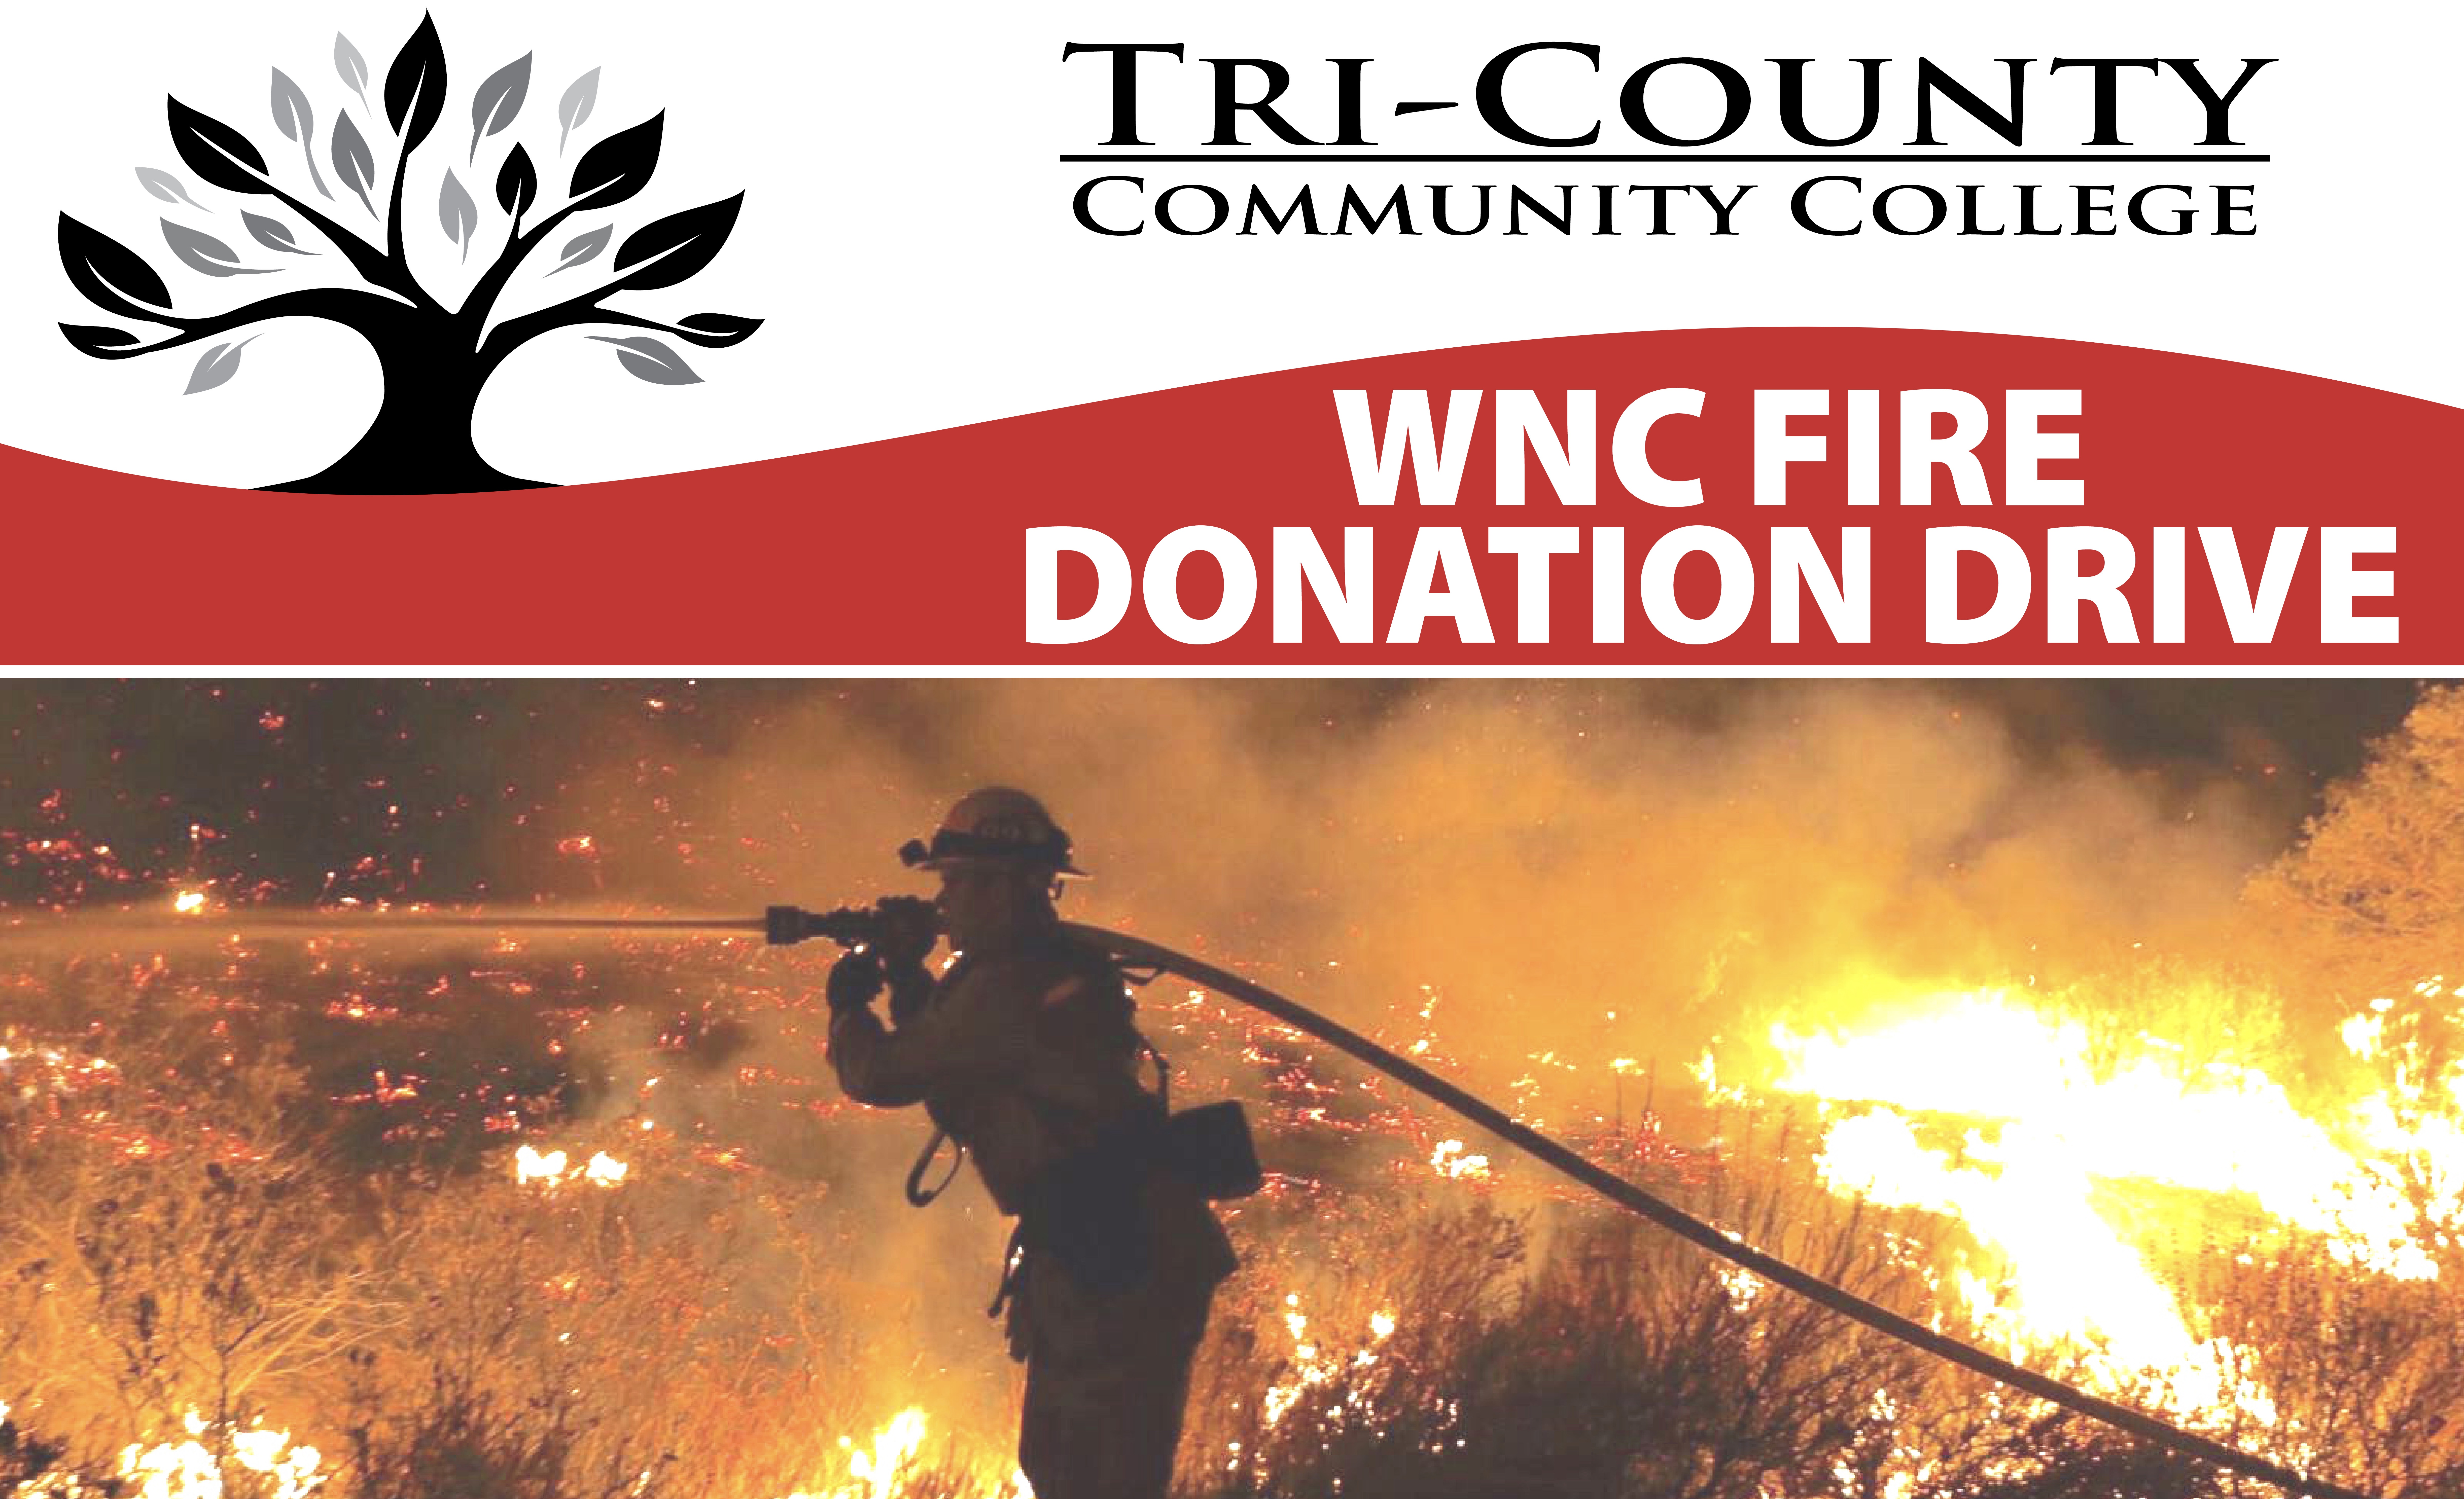 WNC FIRE RELIEF DRIVE (1)